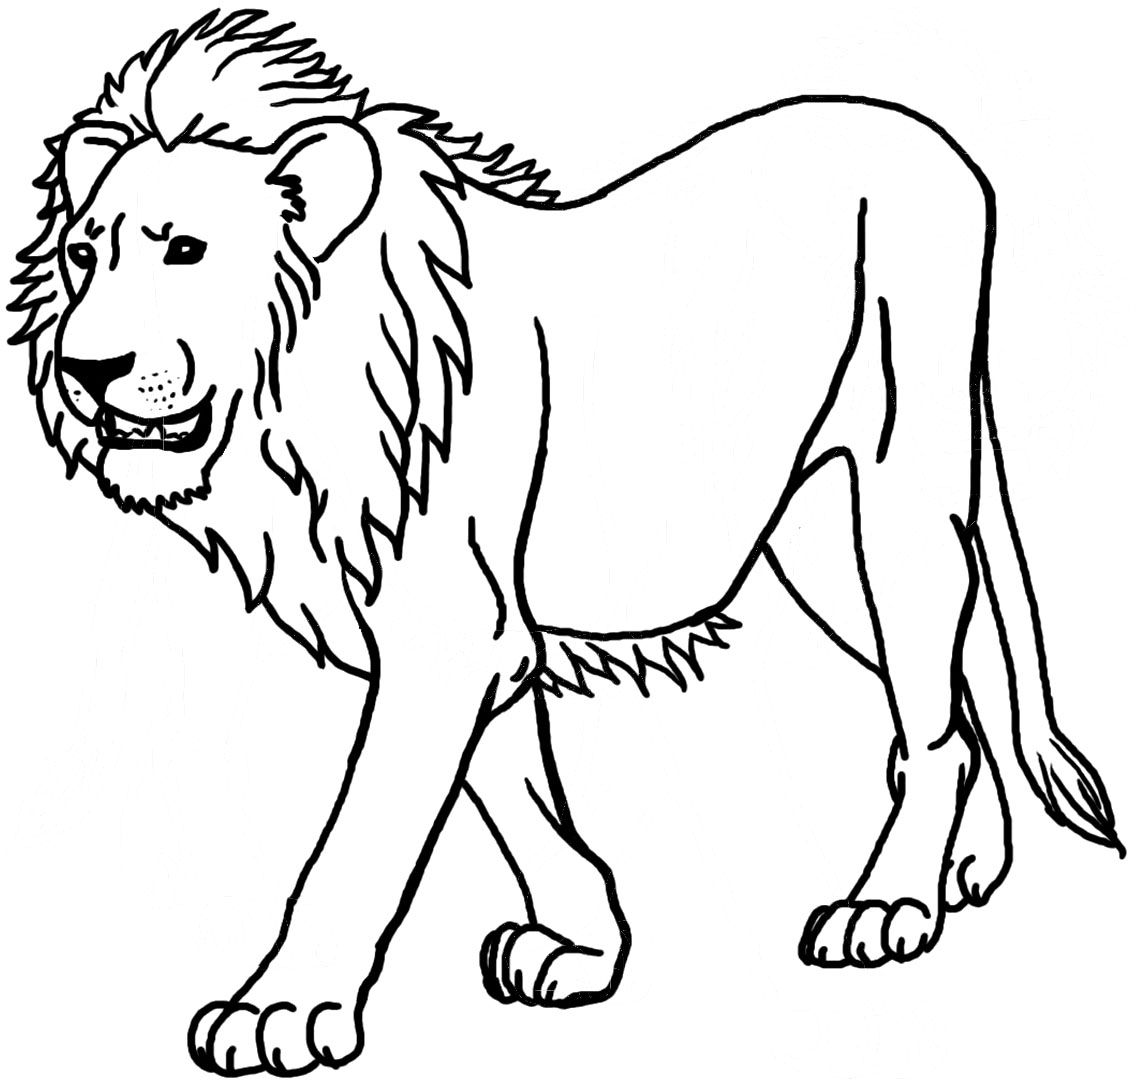 108 dessins de coloriage lion imprimer sur for Make a coloring page out of a photo